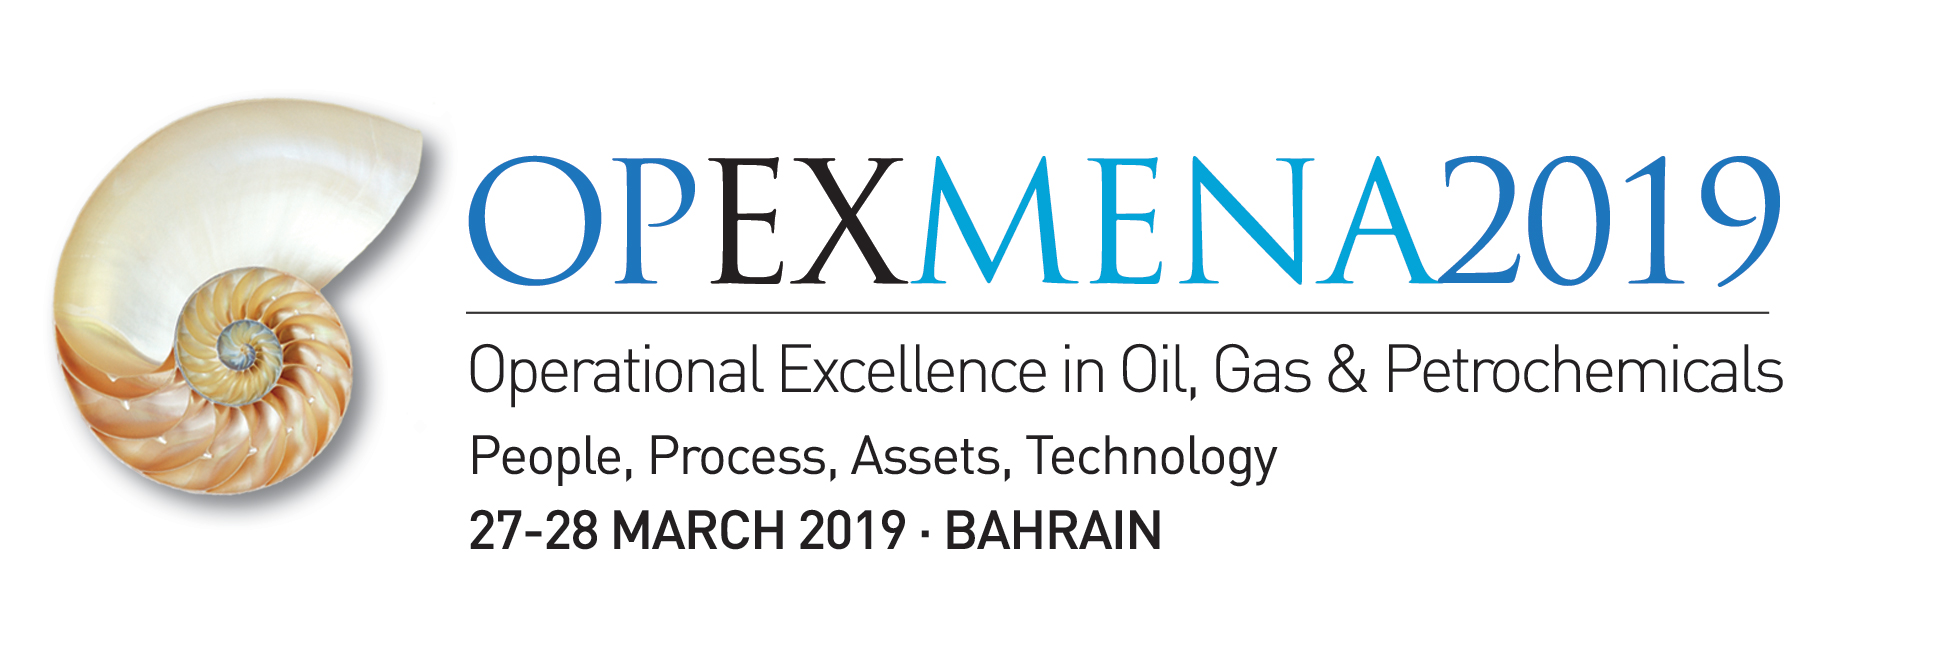 Gulf Safety Forum & OPEX MENA 2019